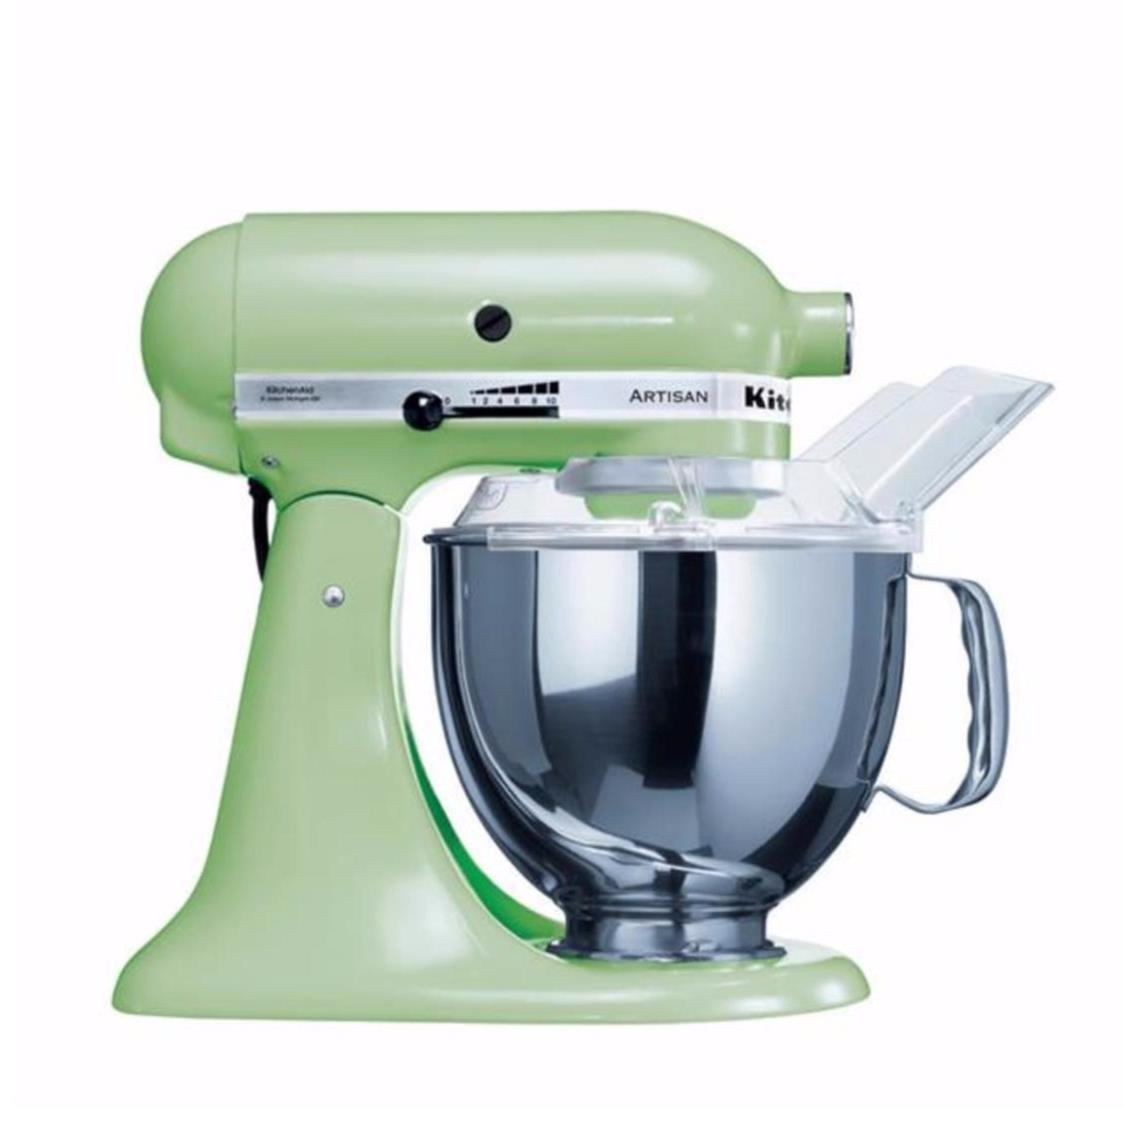 KitchenAid Artisan Series Tilt-Head Stand Mixer 5KSM150PSBPT